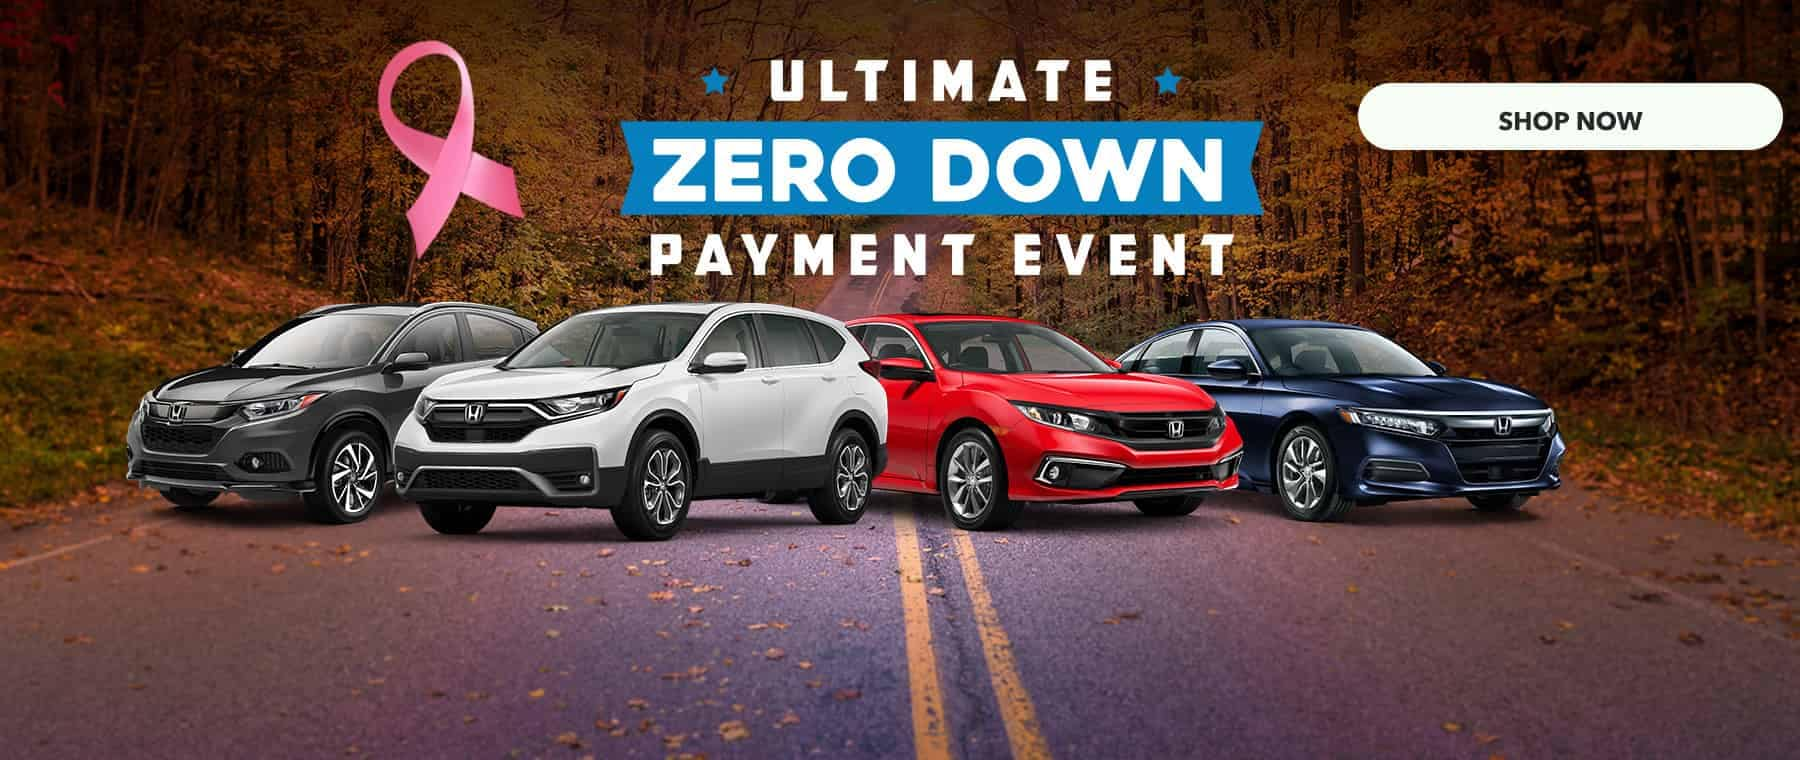 Ultimate Zero Down Payment Event